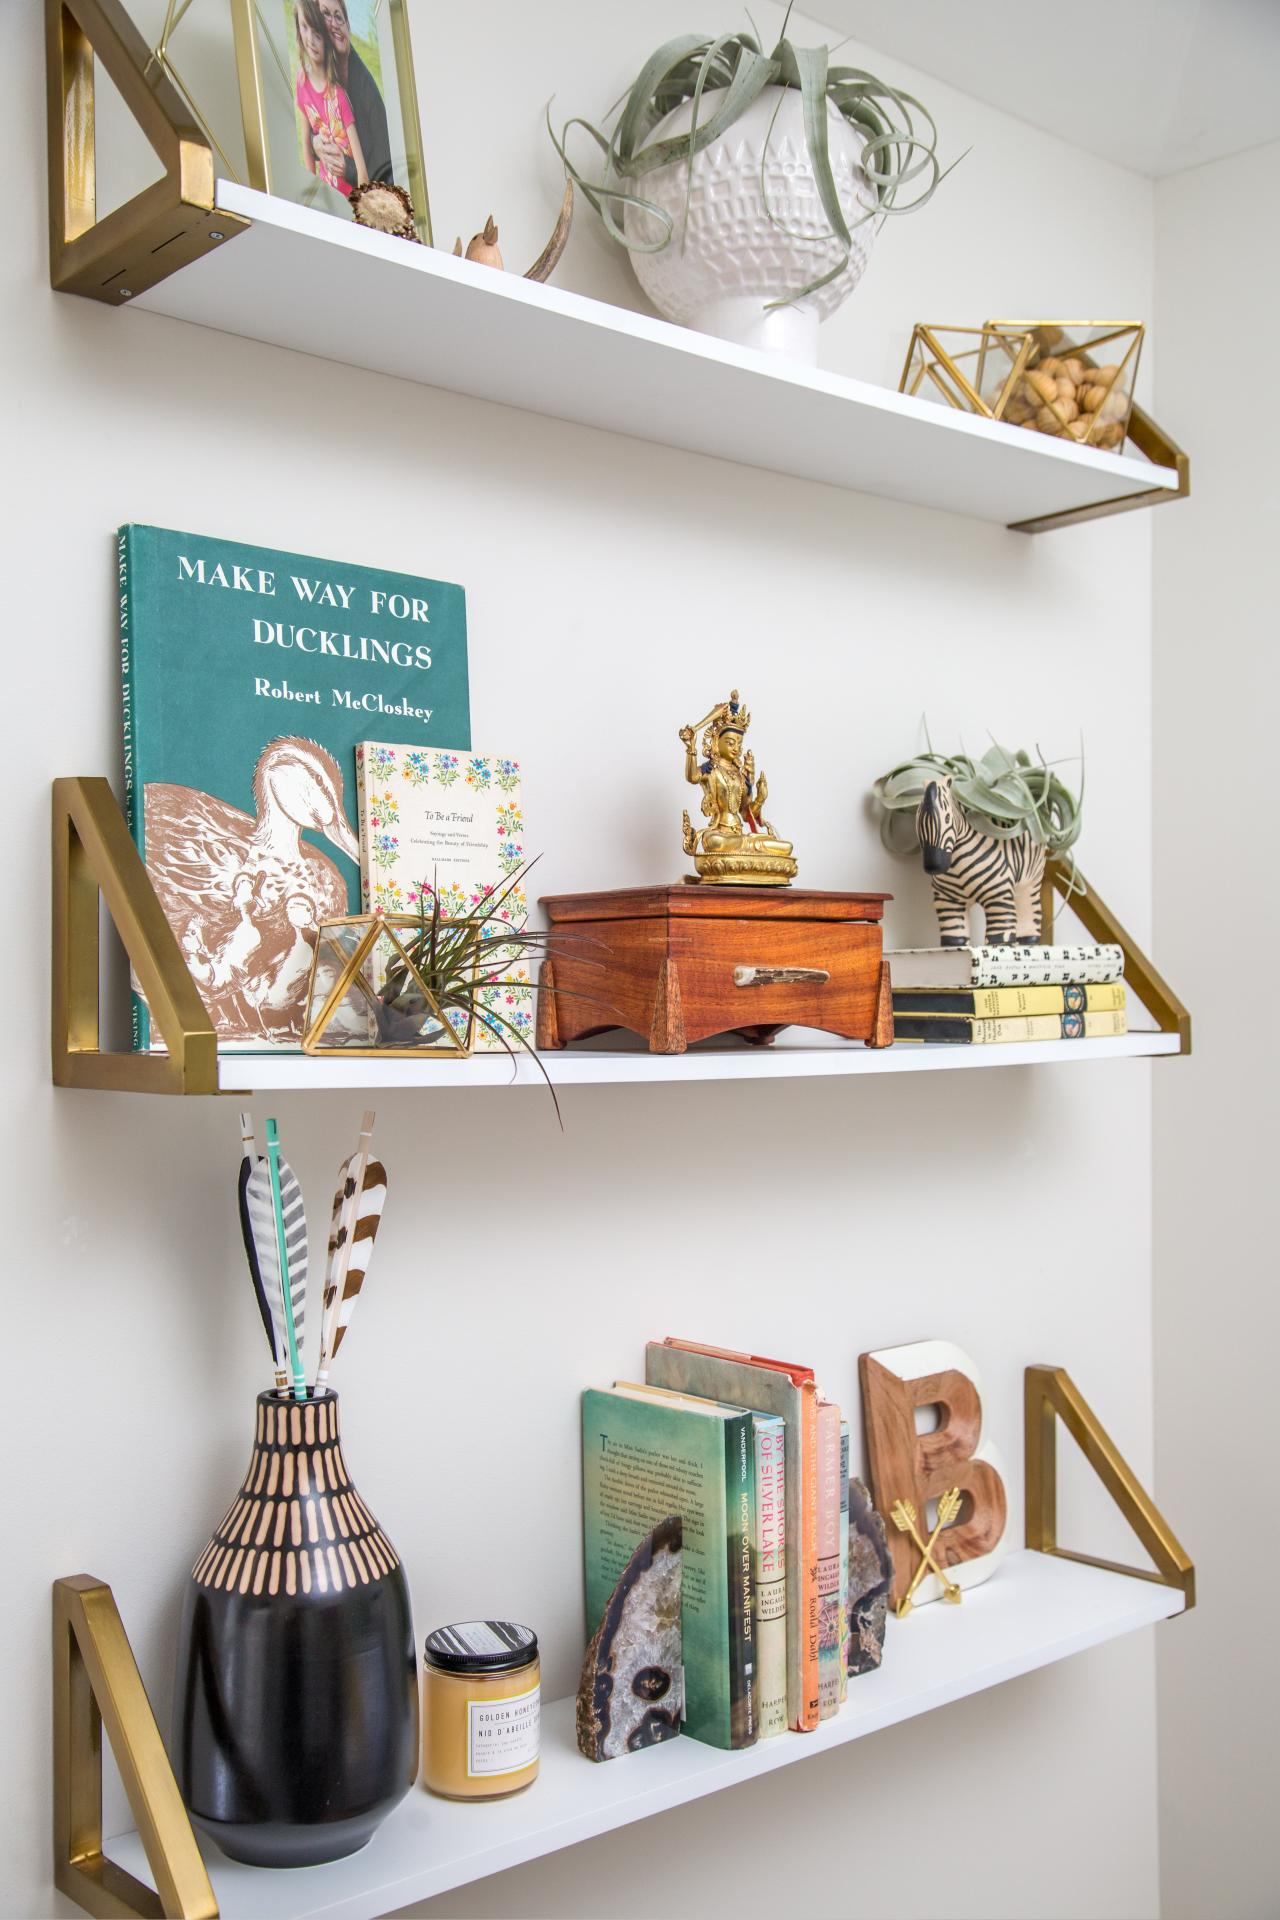 ways decorate with floating shelves decorating shelf bookends eclectic mix accessories custom made bookshelves can you lay vinyl tile over hanging coat rack storage built lights